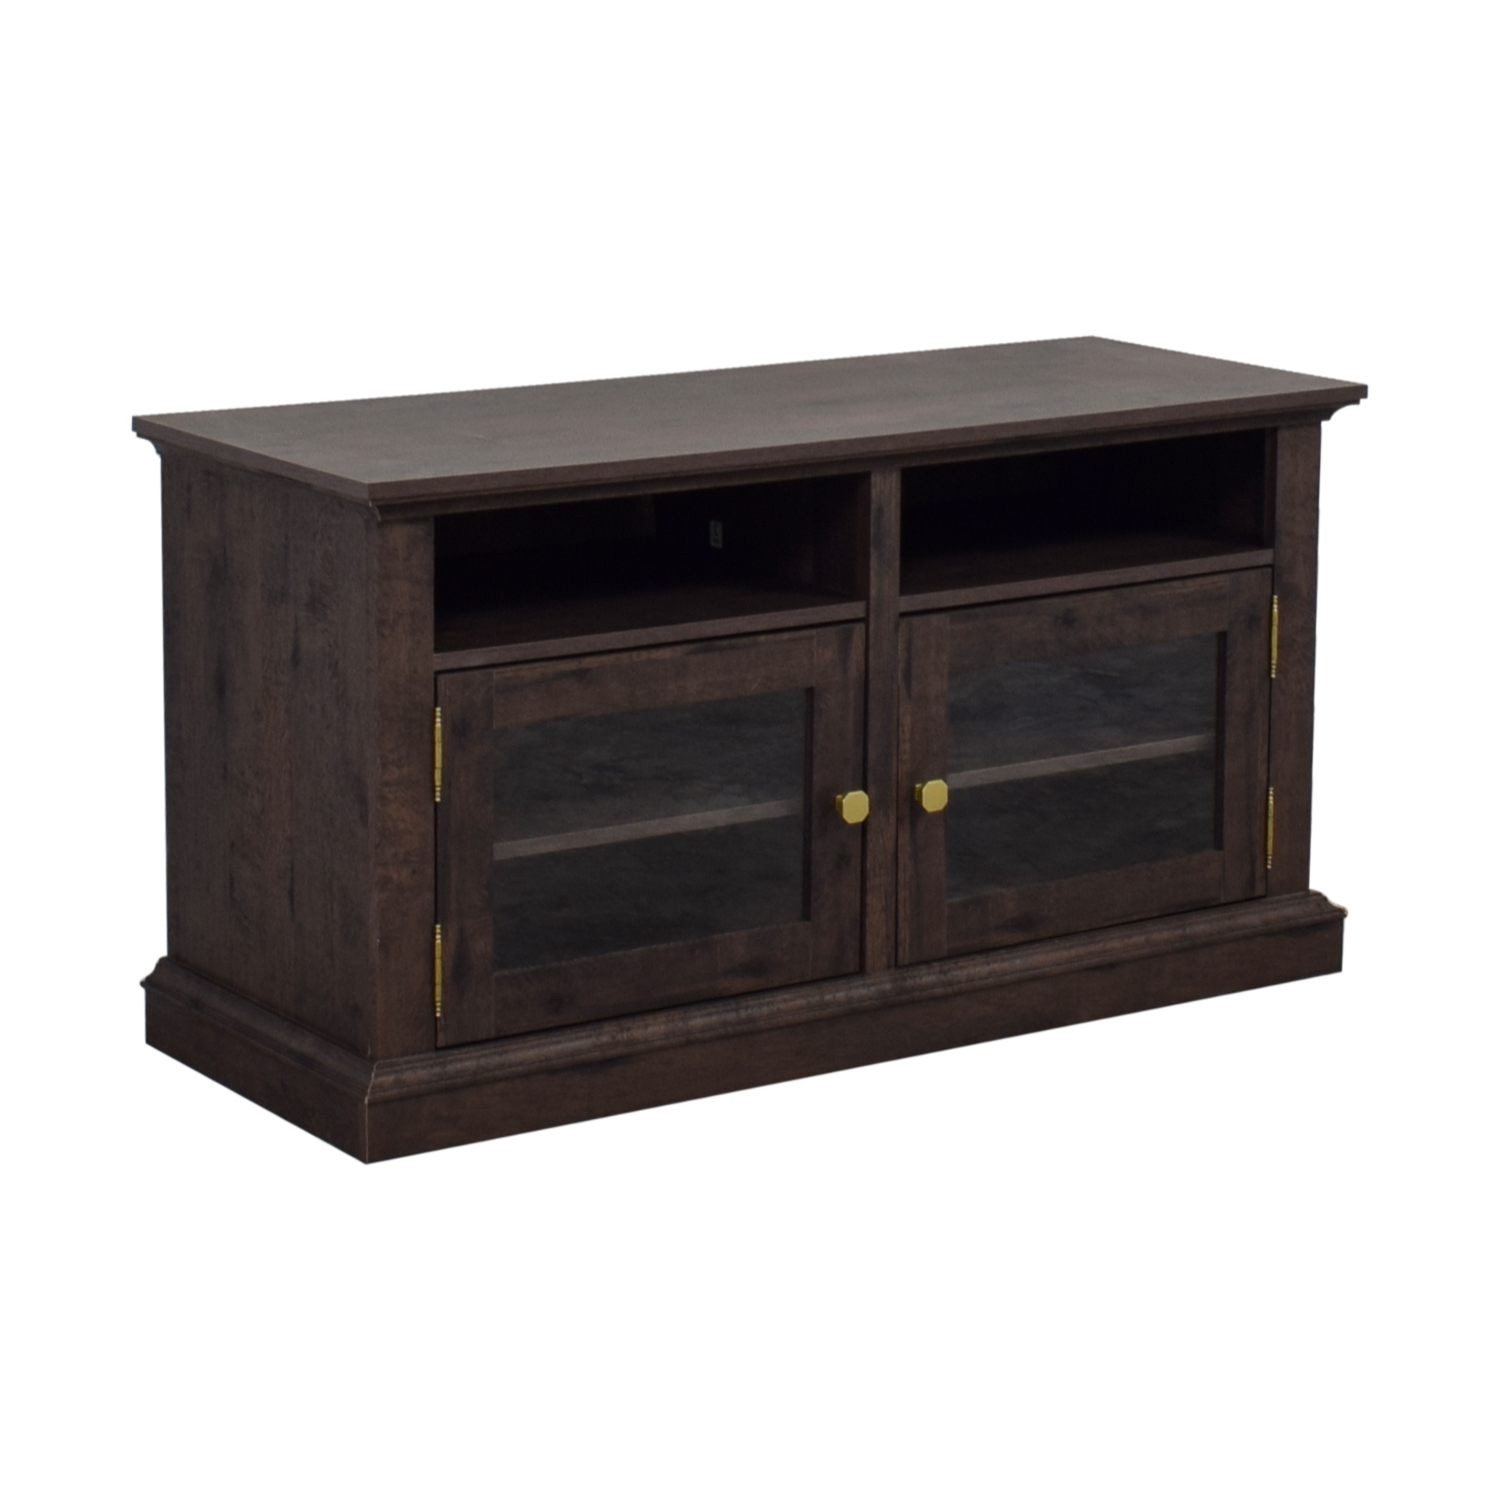 Laurel Foundry Arvilla Wood and Glass TV Stand sale